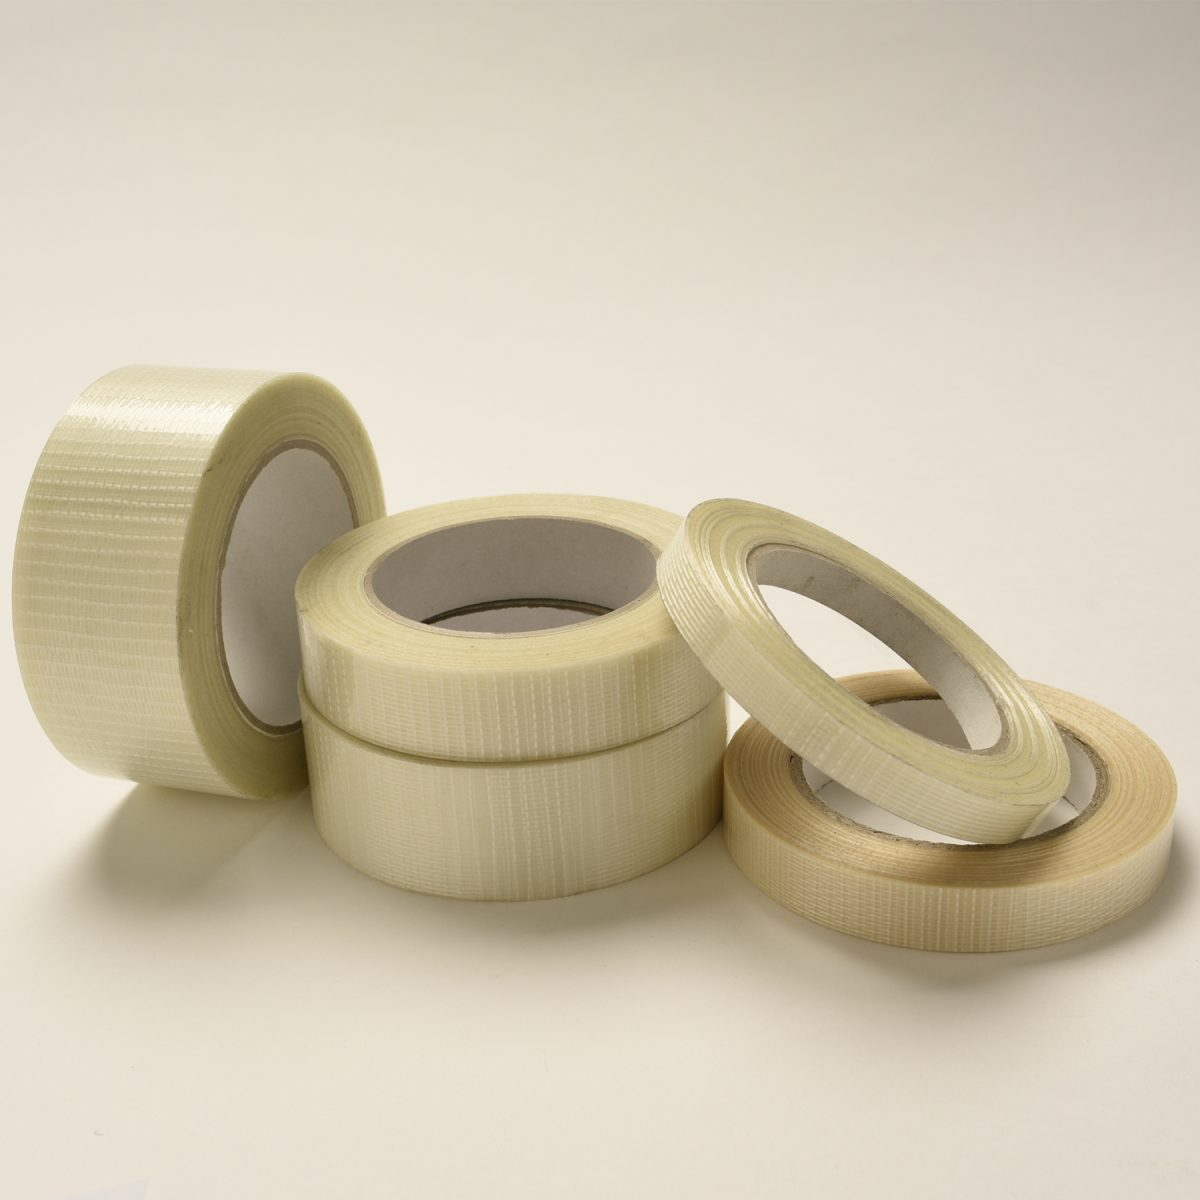 Filament & Strapping Tapes – What You Need to Know